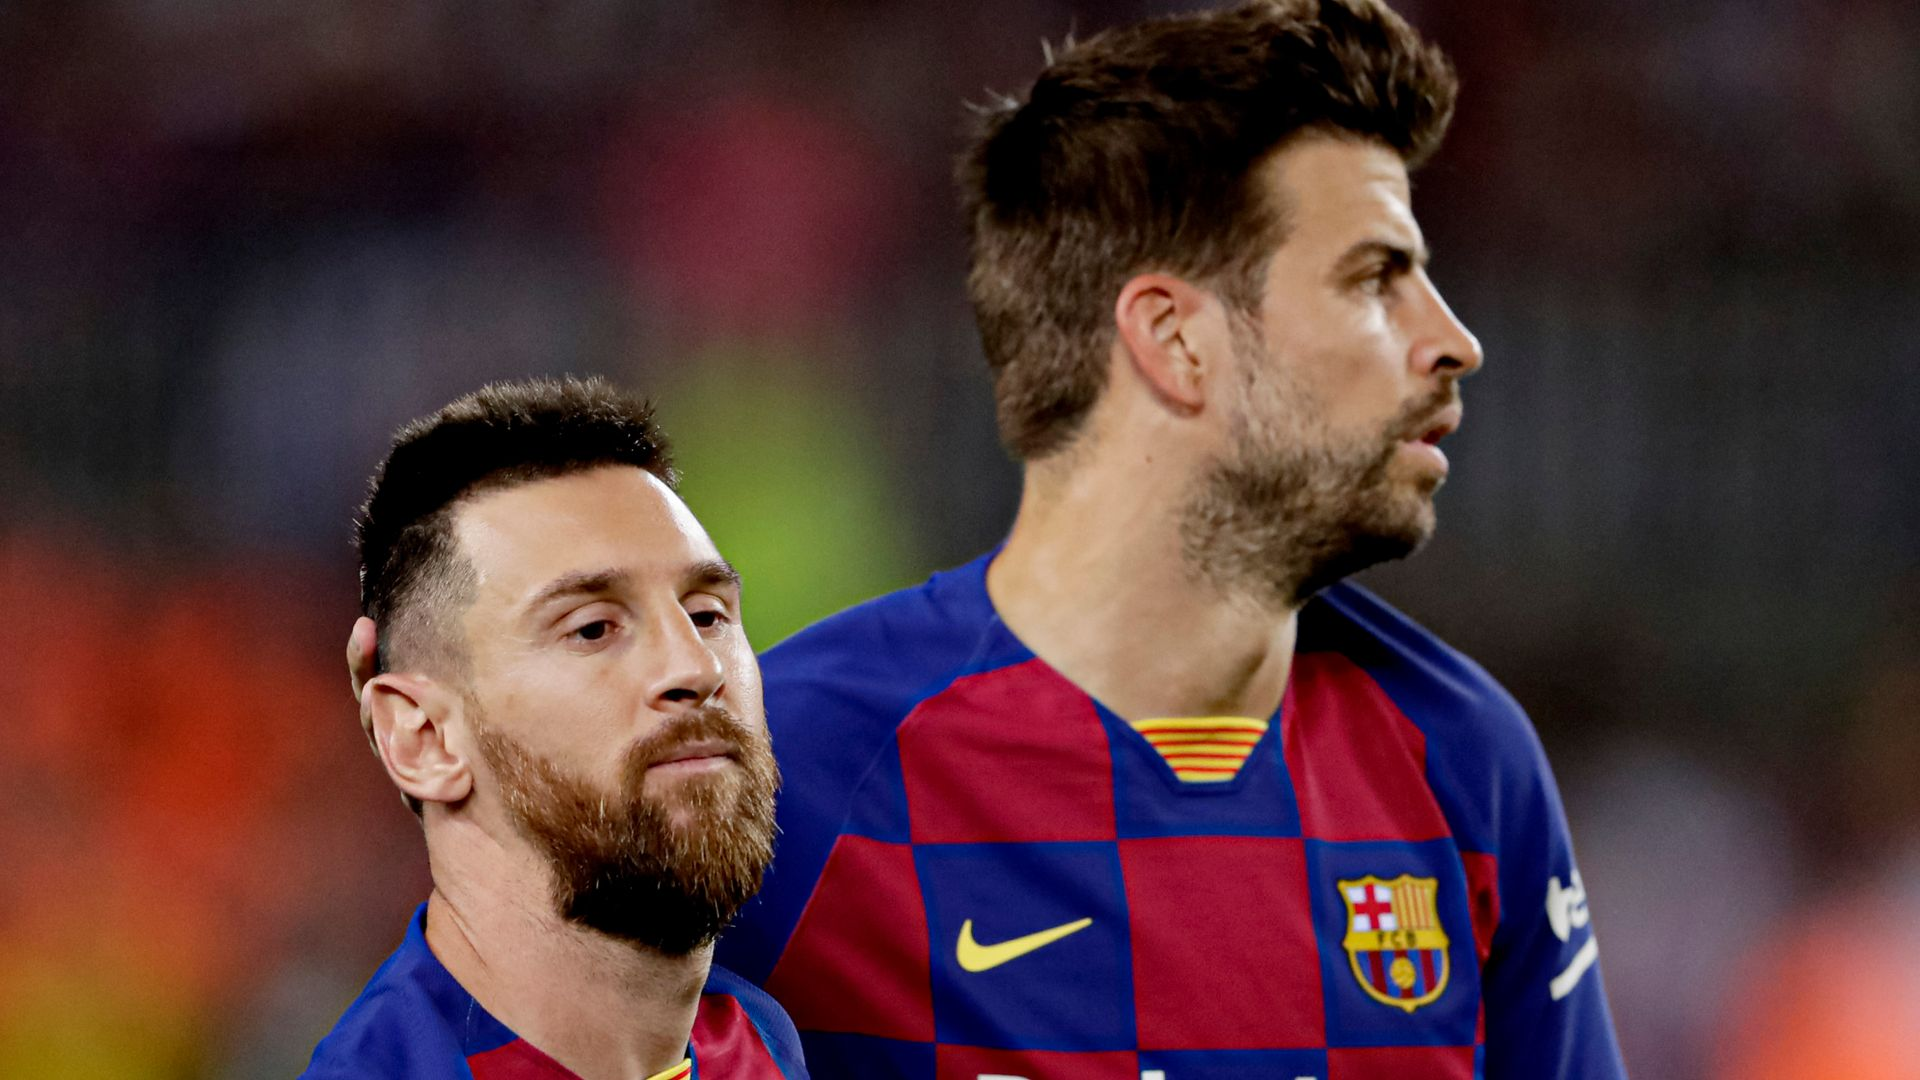 Pique lays into Barca over Messi situation